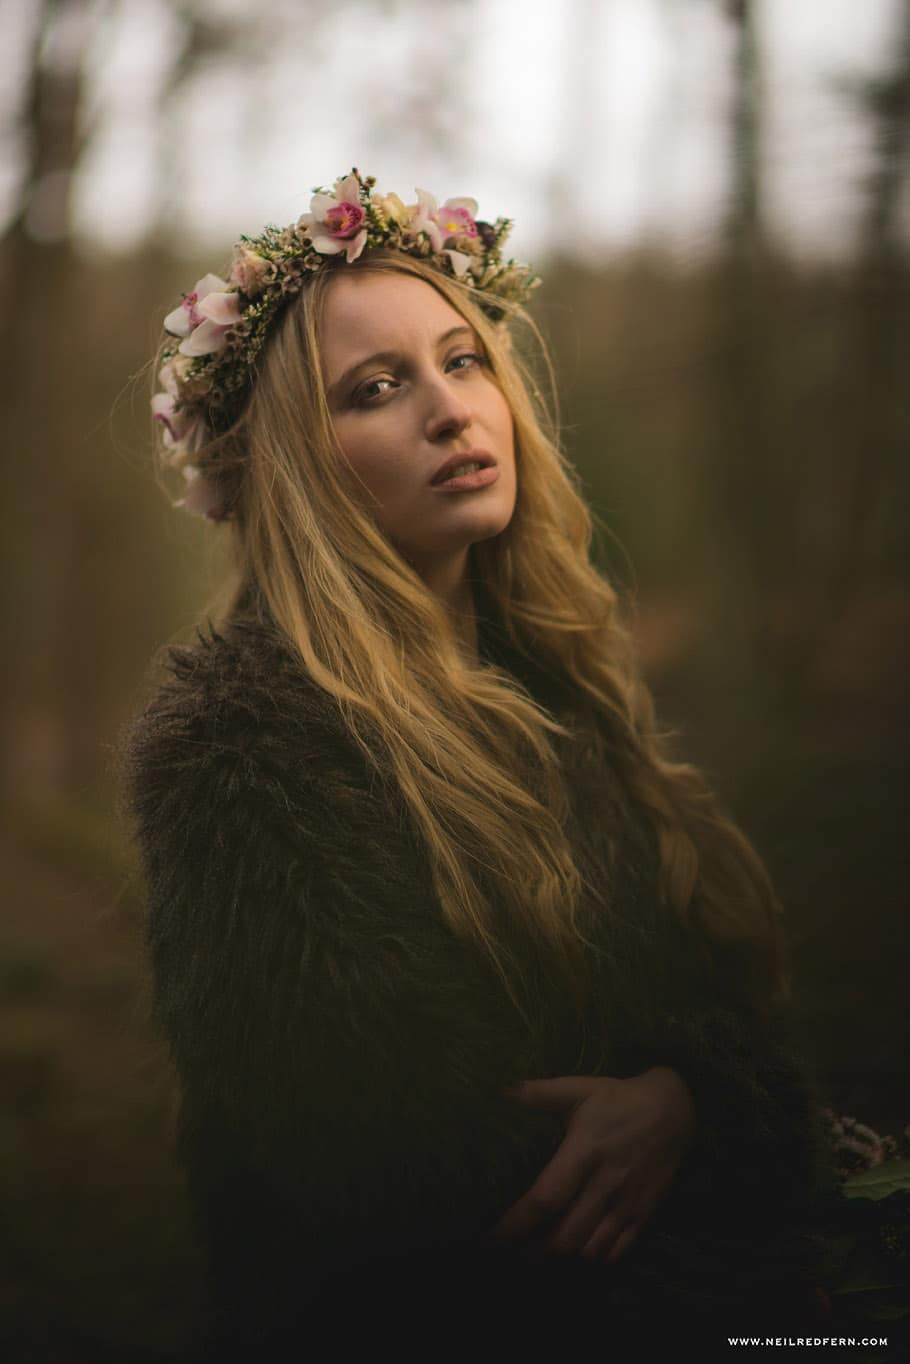 Portrait shoot in Delamere Forest 04